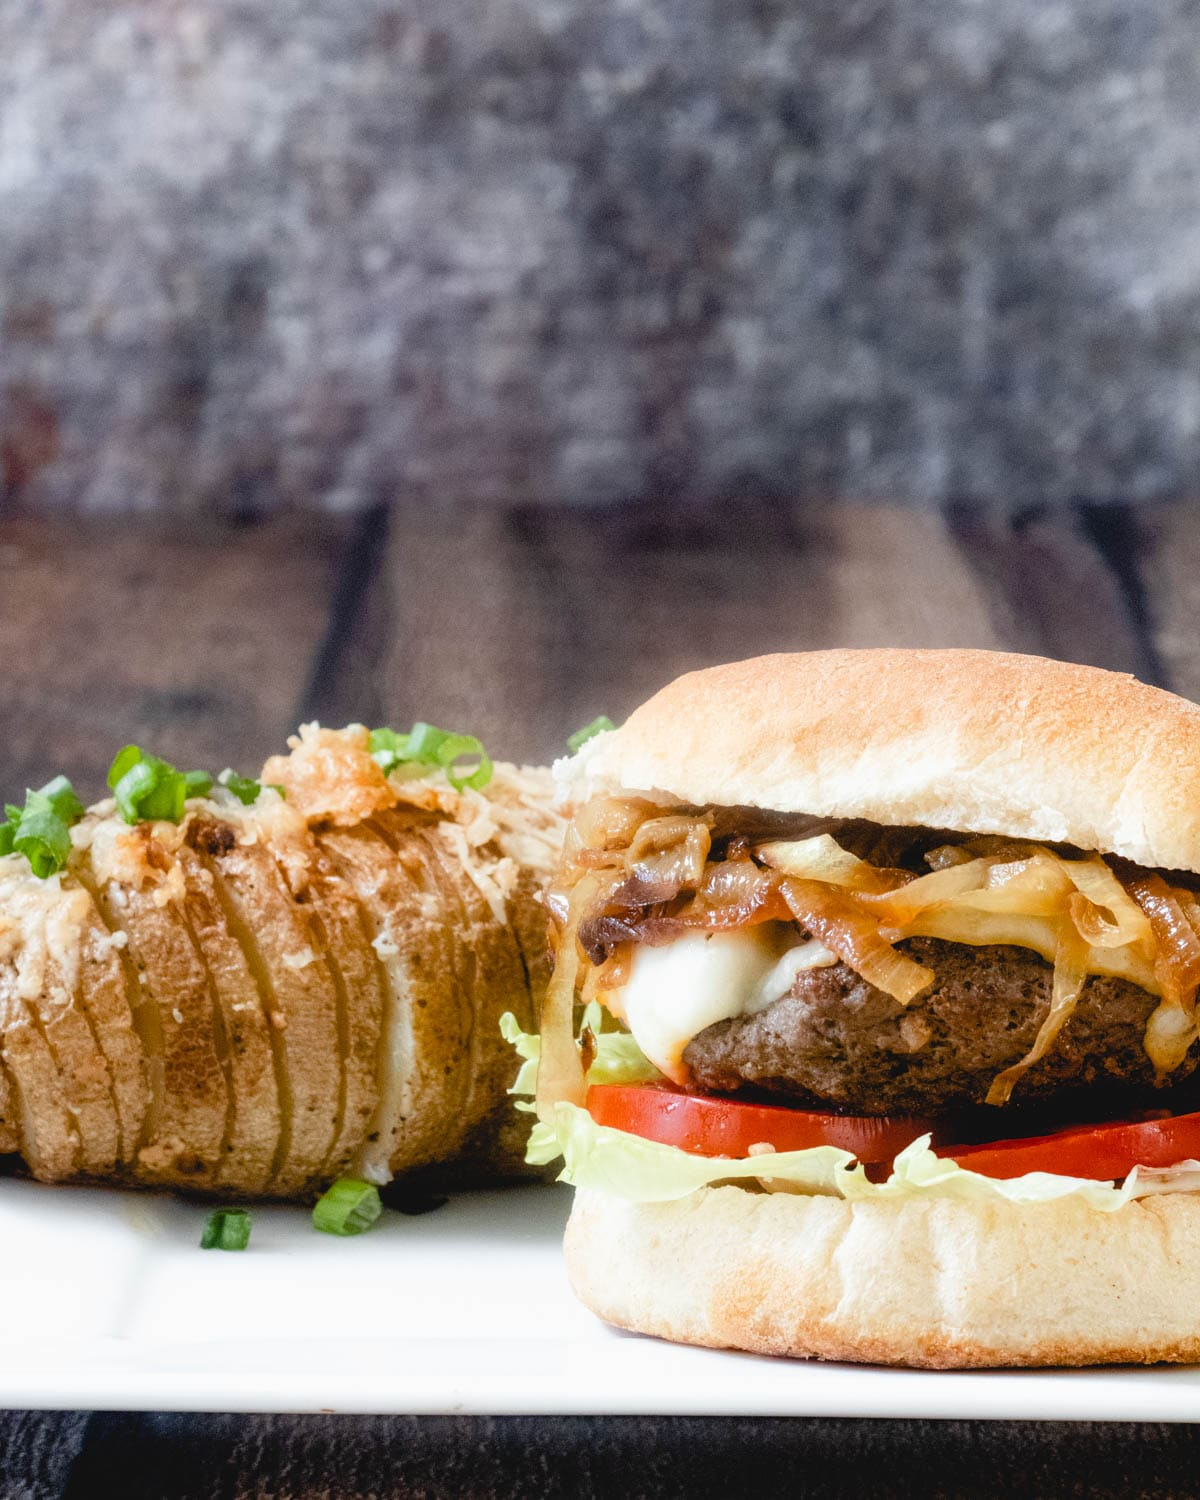 famous food from Montana includes elk burgers with hasselback potatoes.